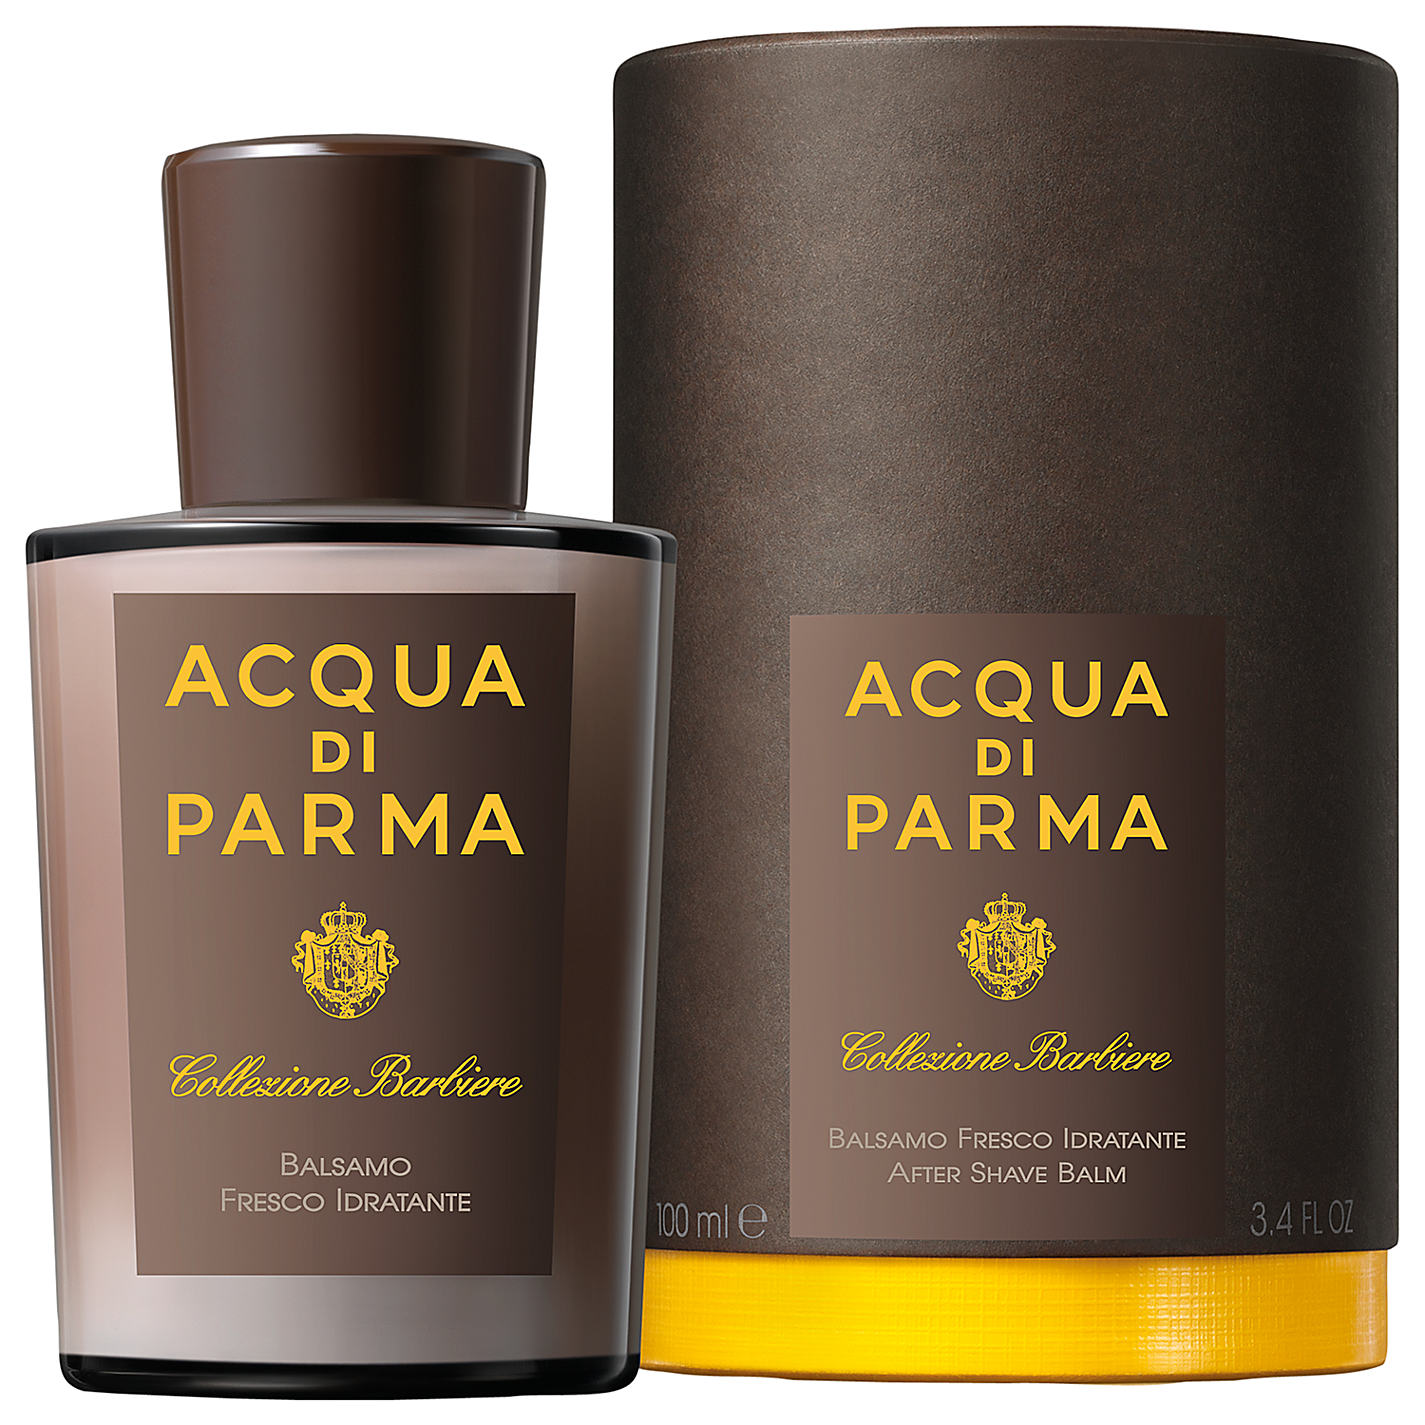 ACQUA DI PARMA COLECCION BARBIERE A/SHAVE BALM 100 ML